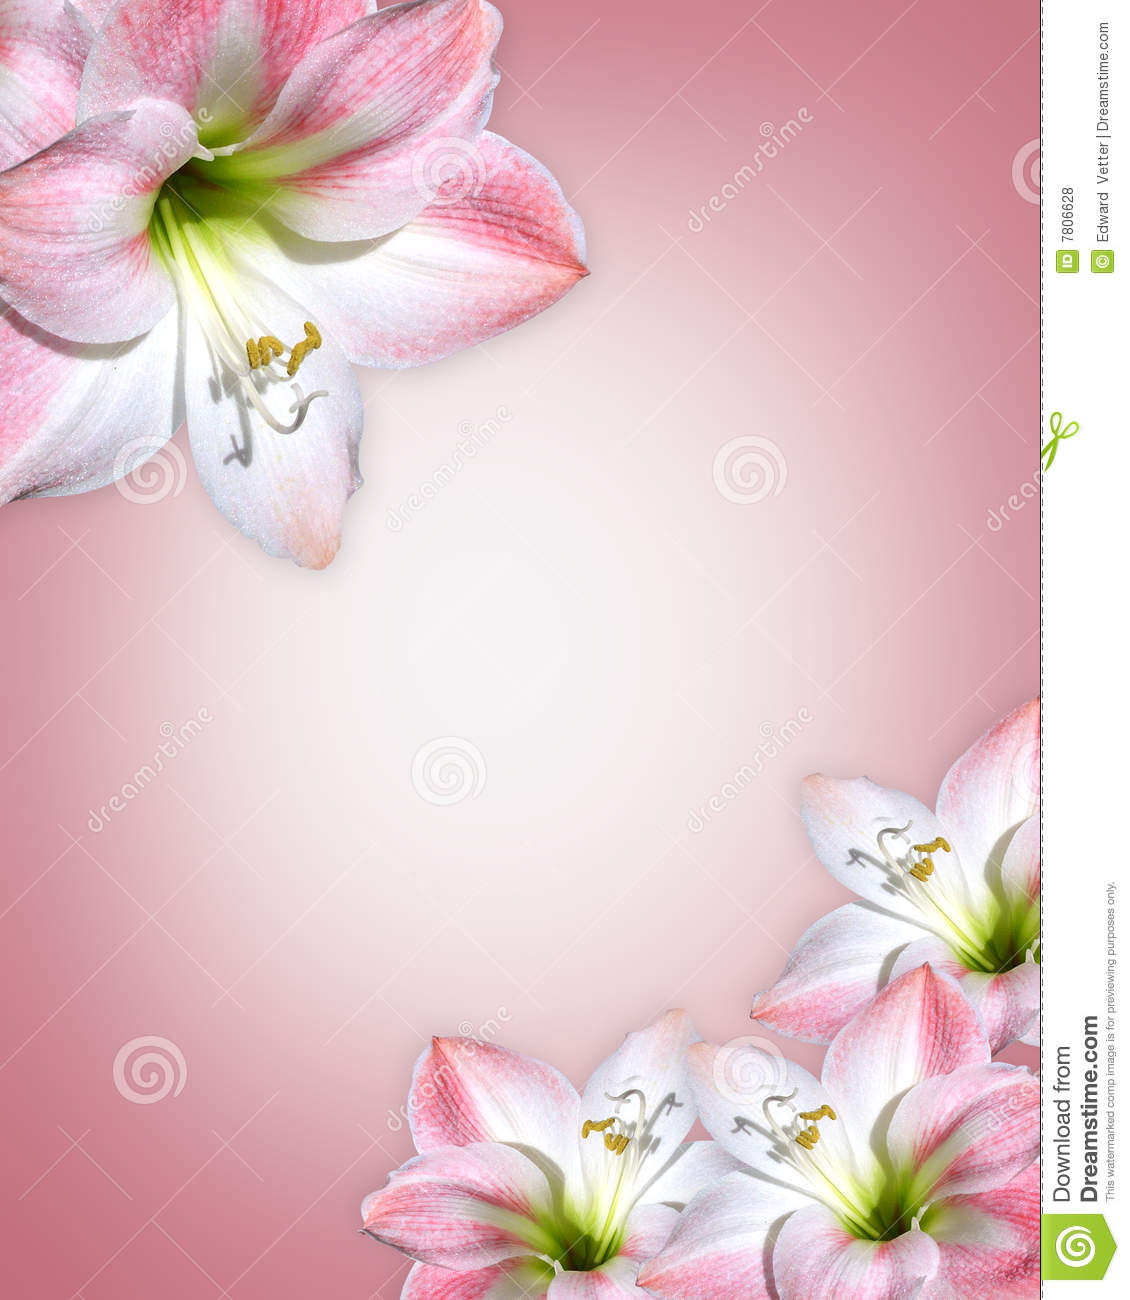 Pink flowers border amaryllis stock illustration illustration of pink flowers border amaryllis mightylinksfo Choice Image